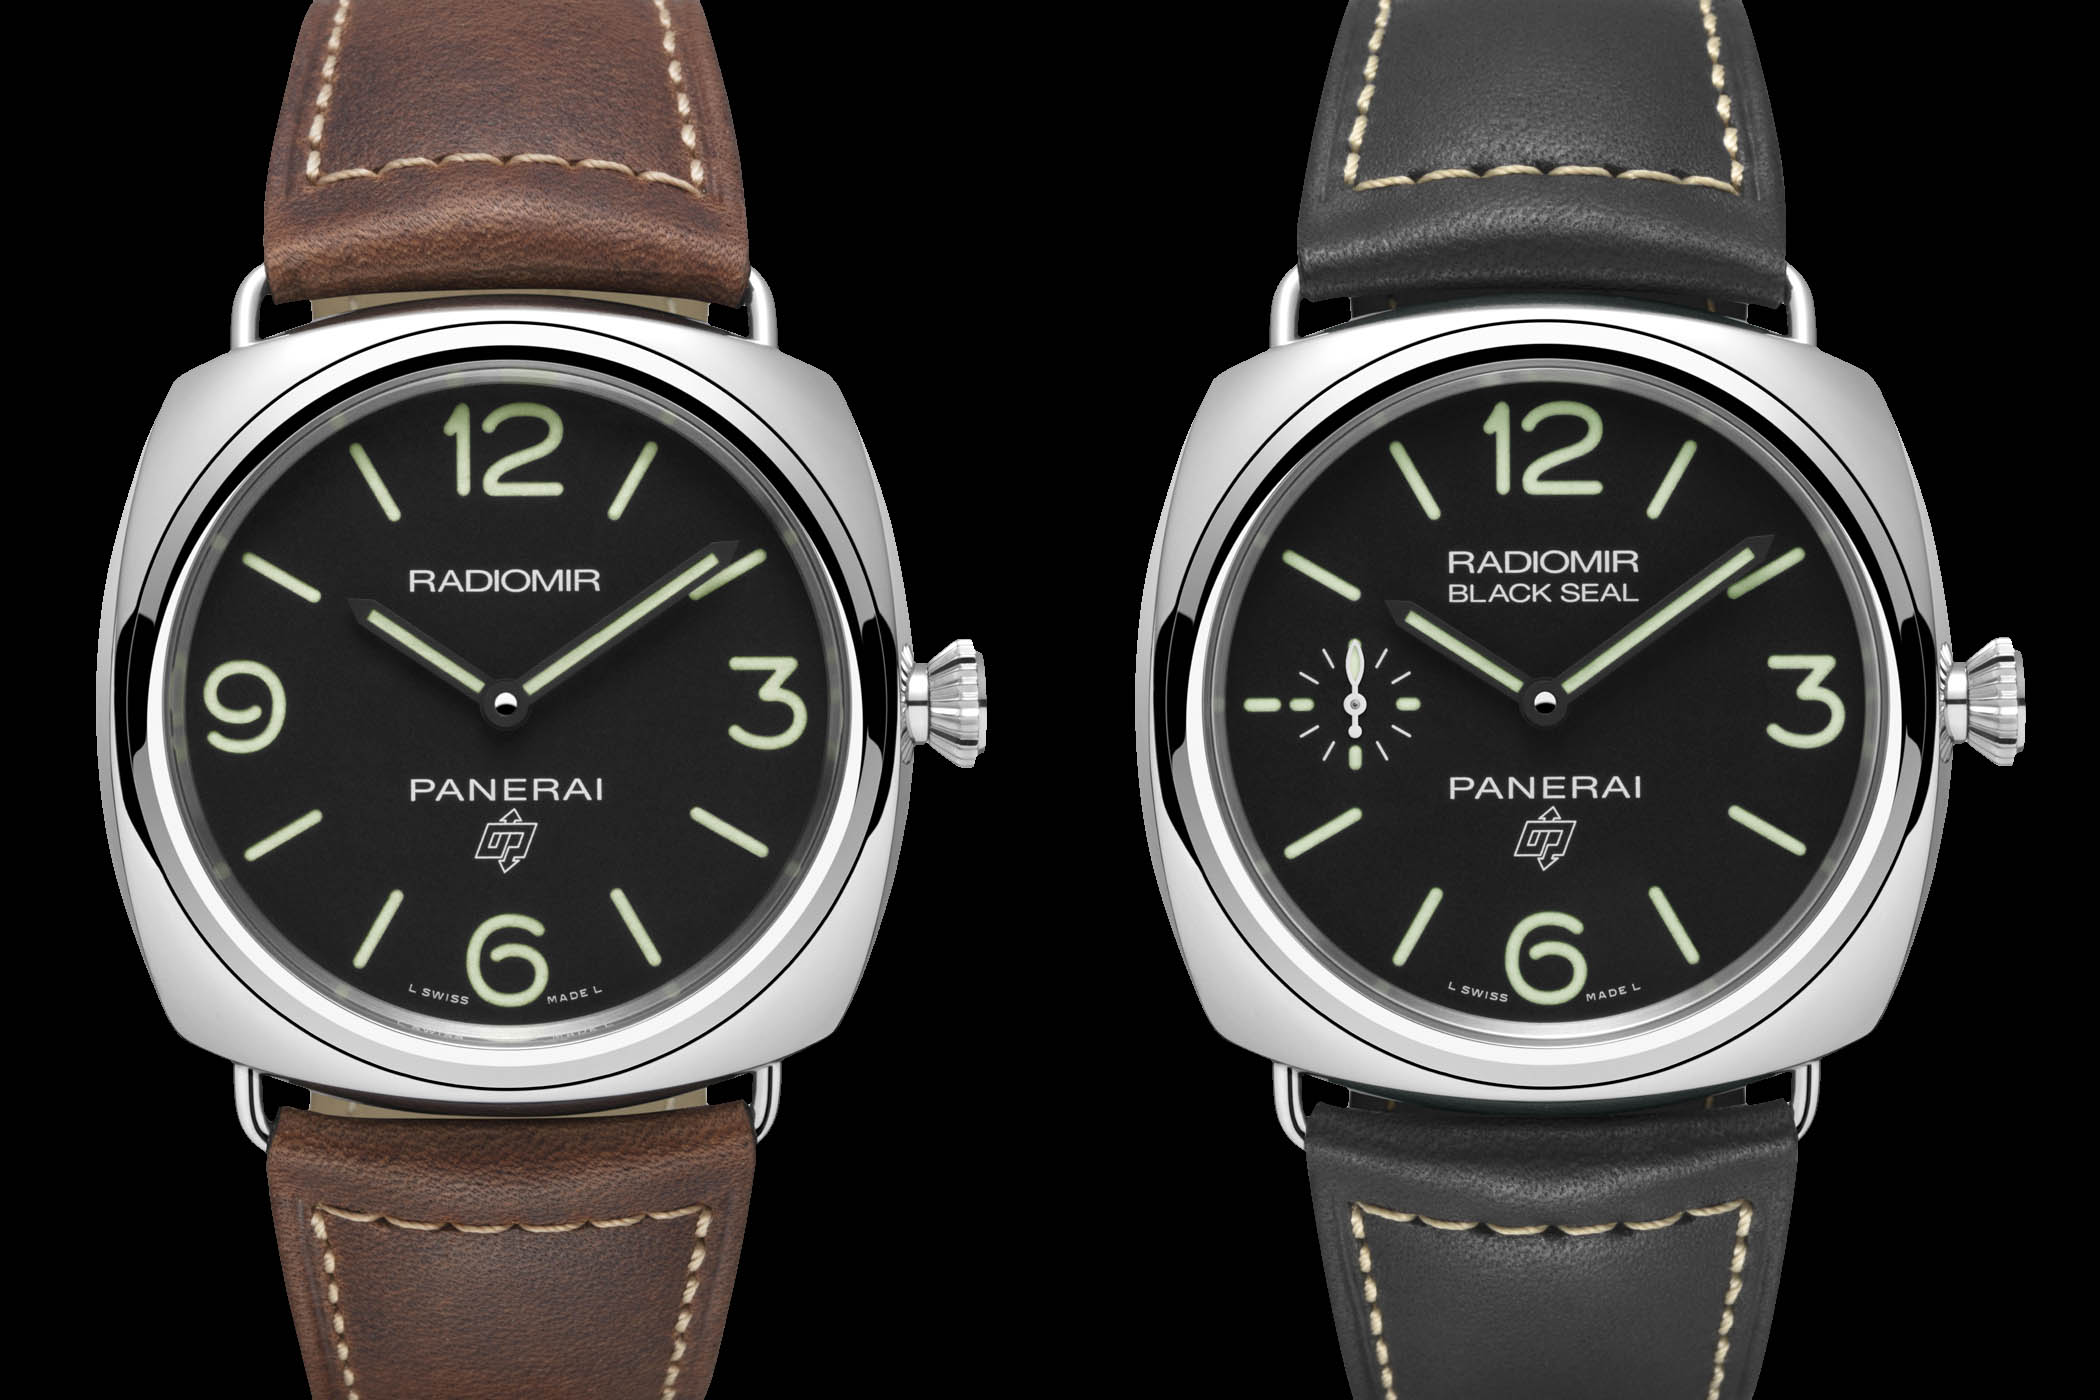 Affordable Panerai Radiomir Base 3 Days Acciaio PAM00753 and Radiomir Black Seal 3 Days Acciaio PAM00754